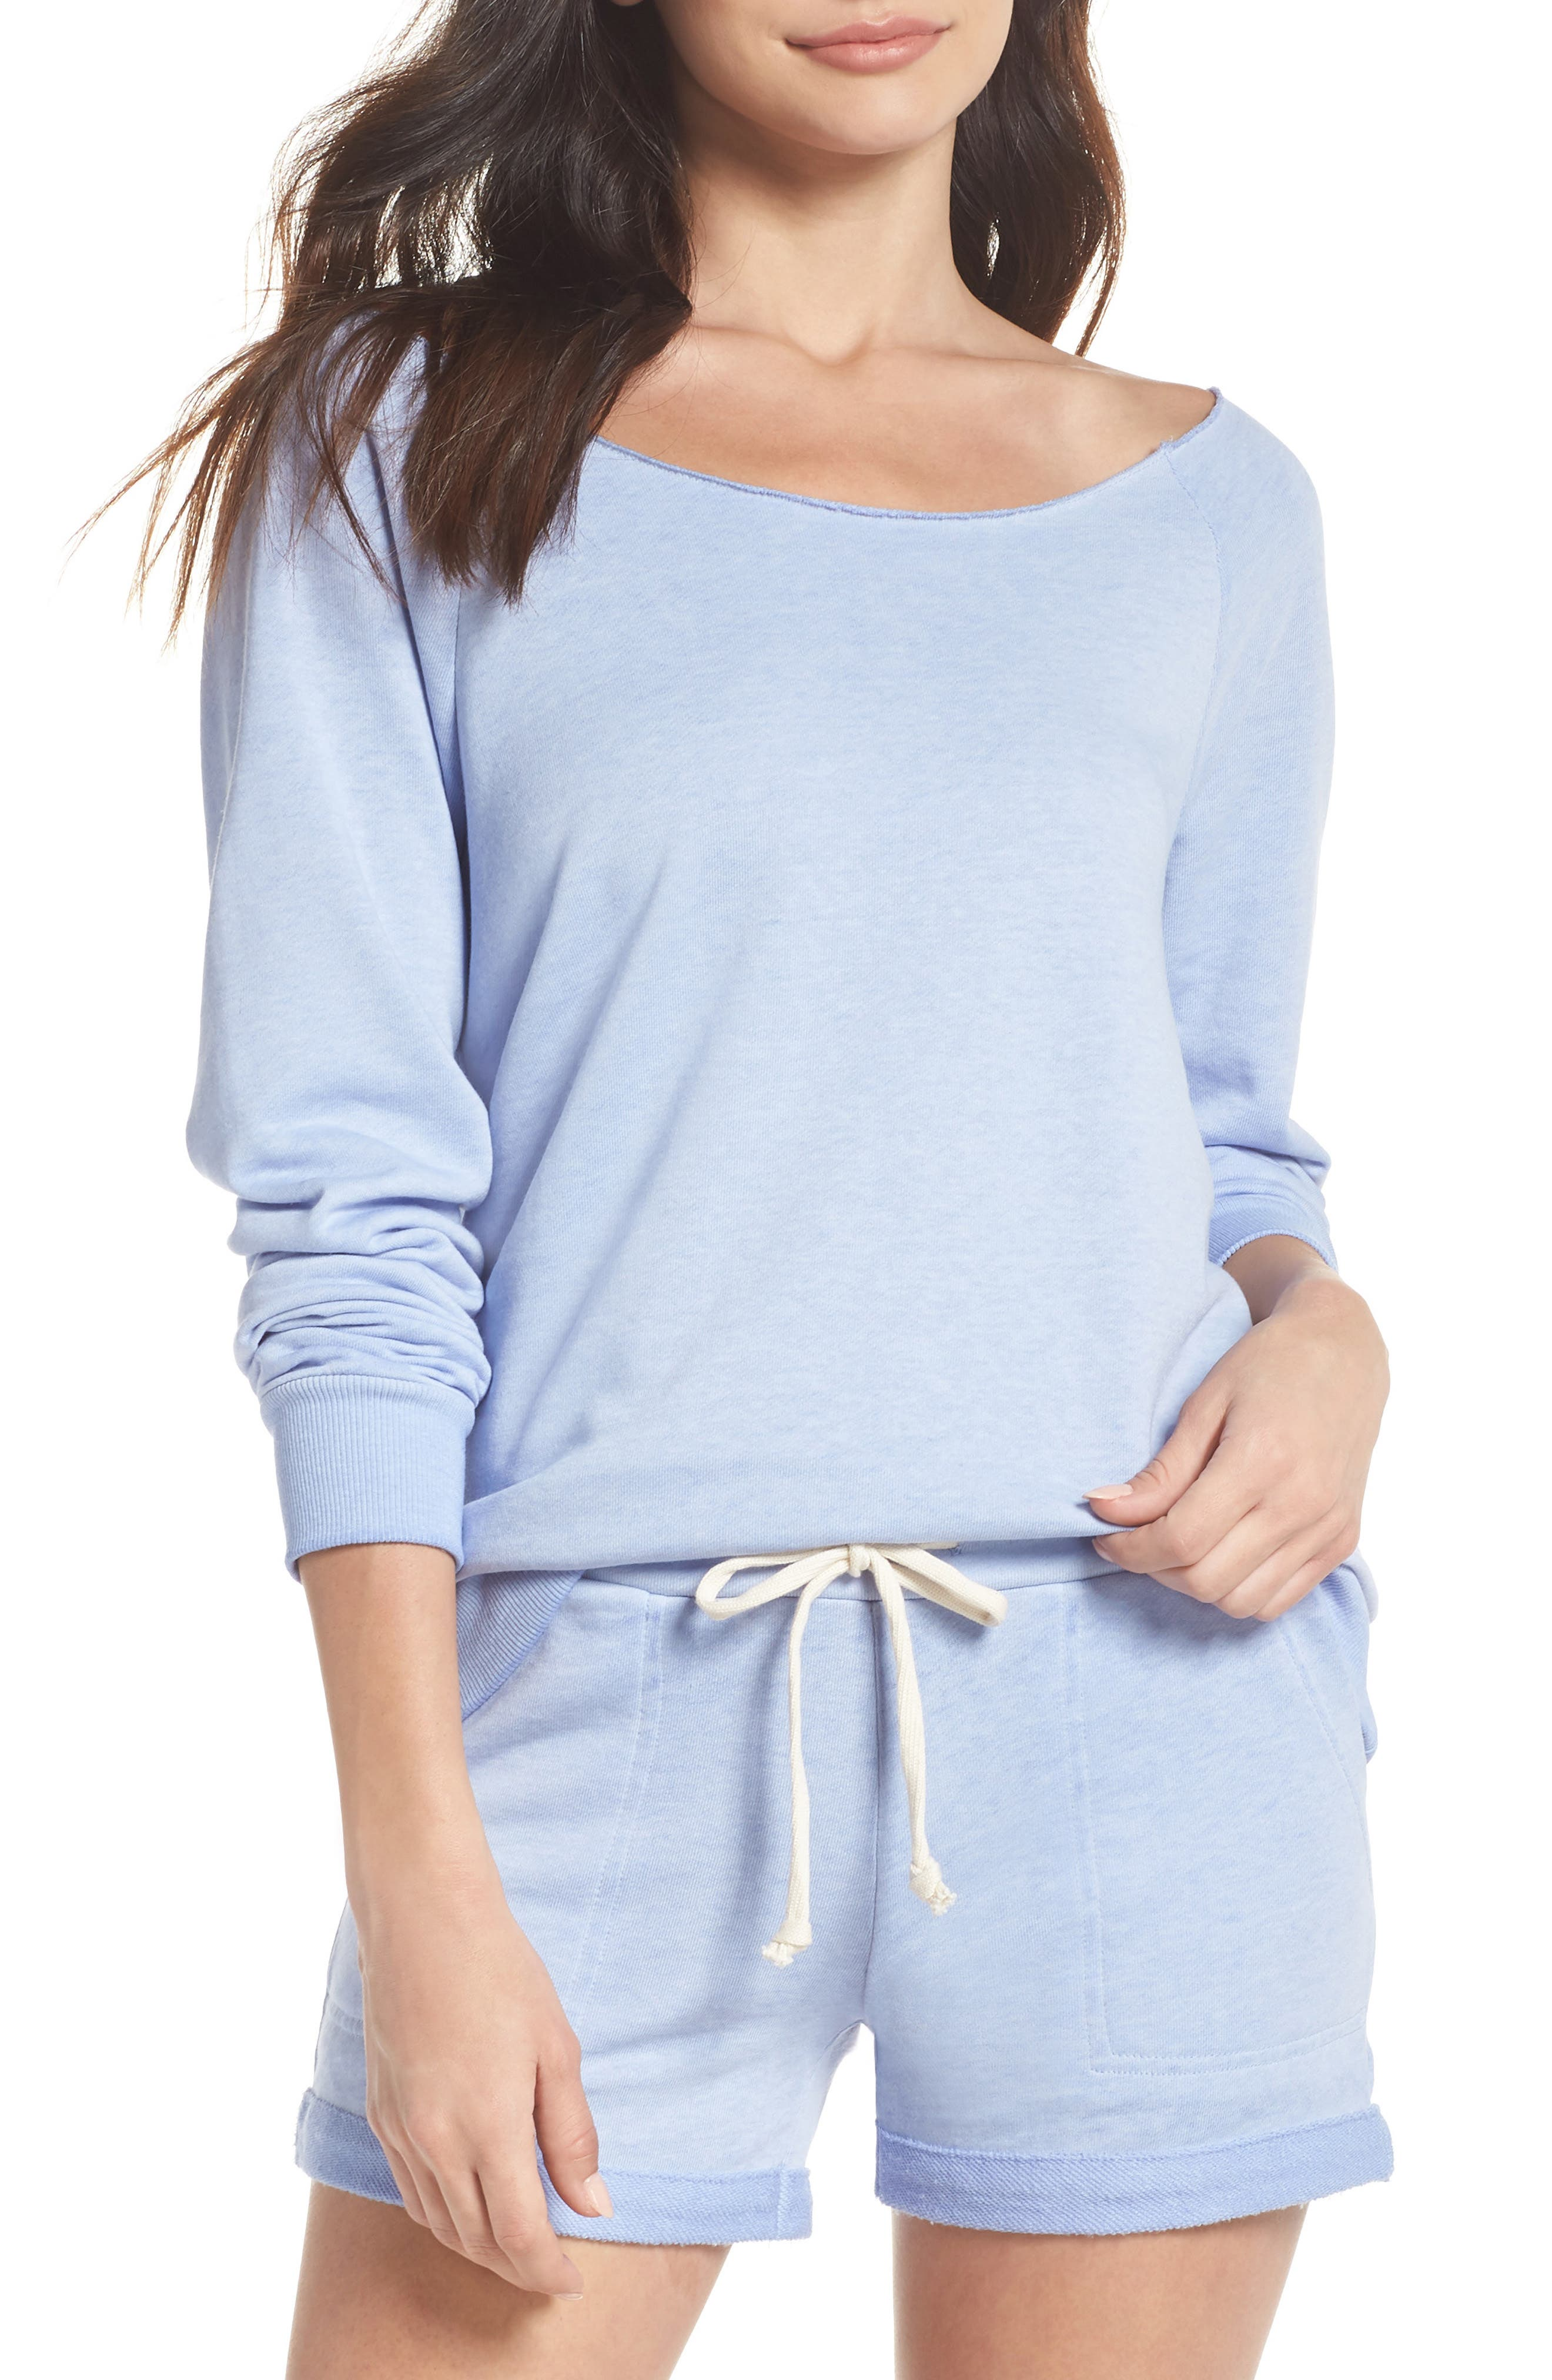 Maniac French Terry Sweatshirt,                         Main,                         color, Lavender Lustre